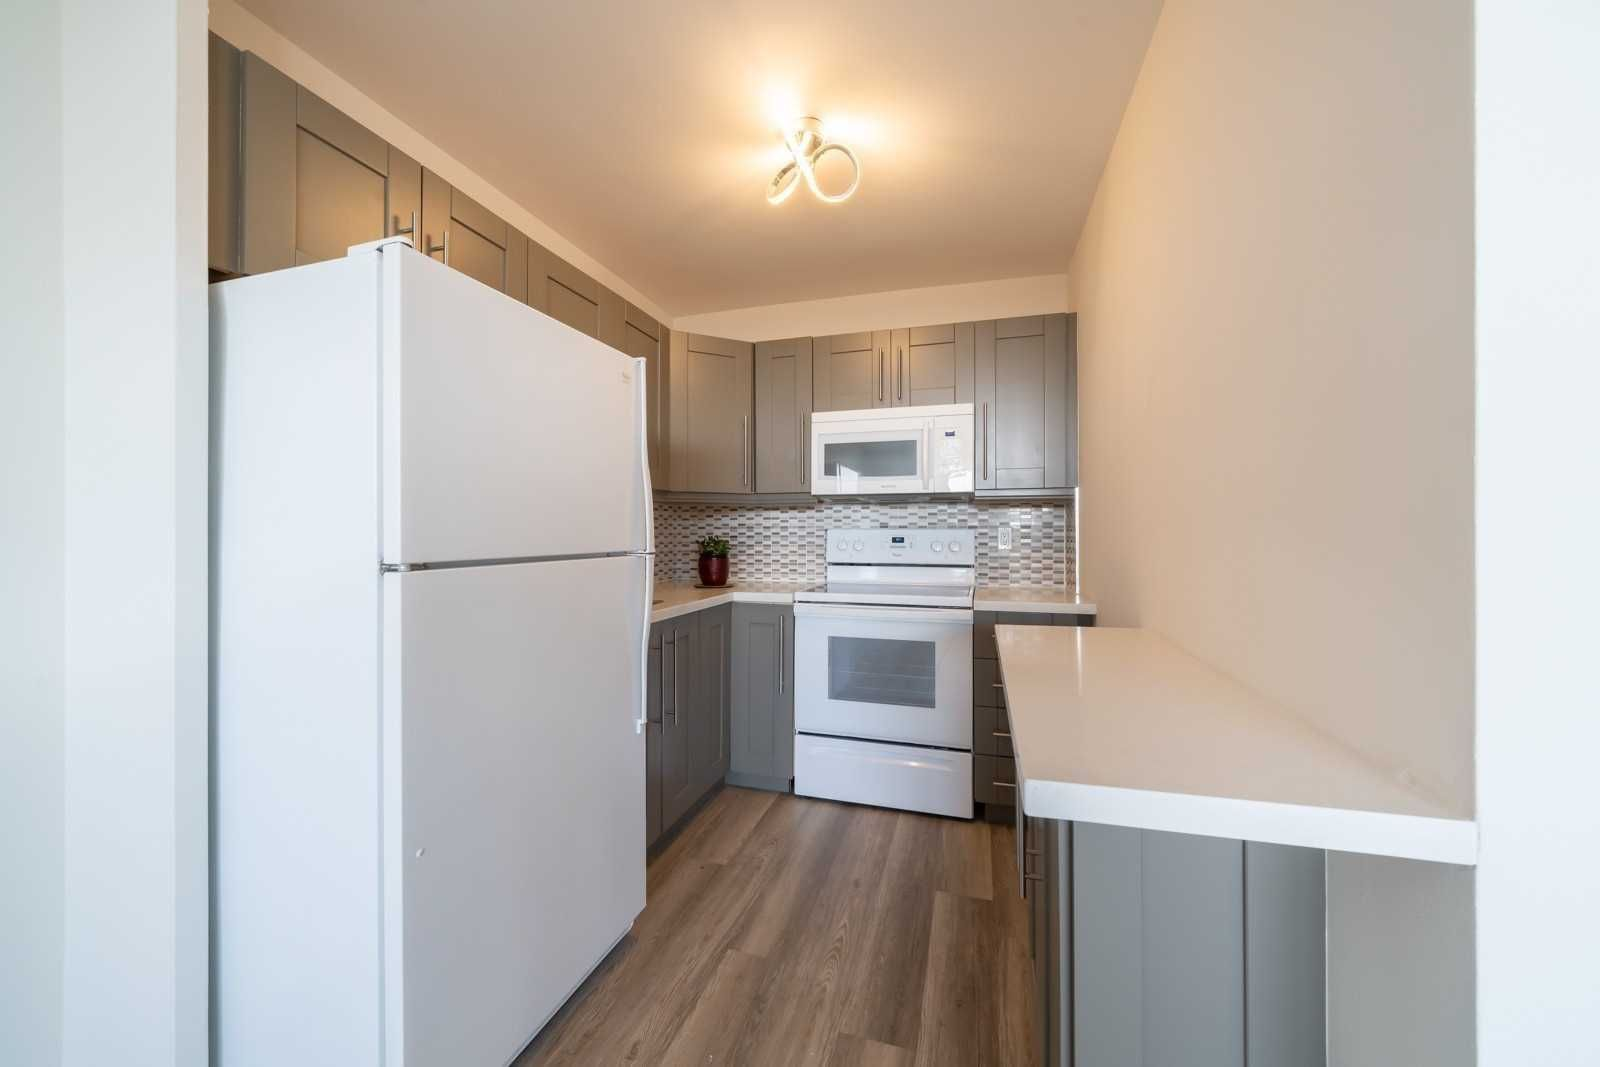 40 Homewood Ave, unit 1810 for rent in Toronto - image #1